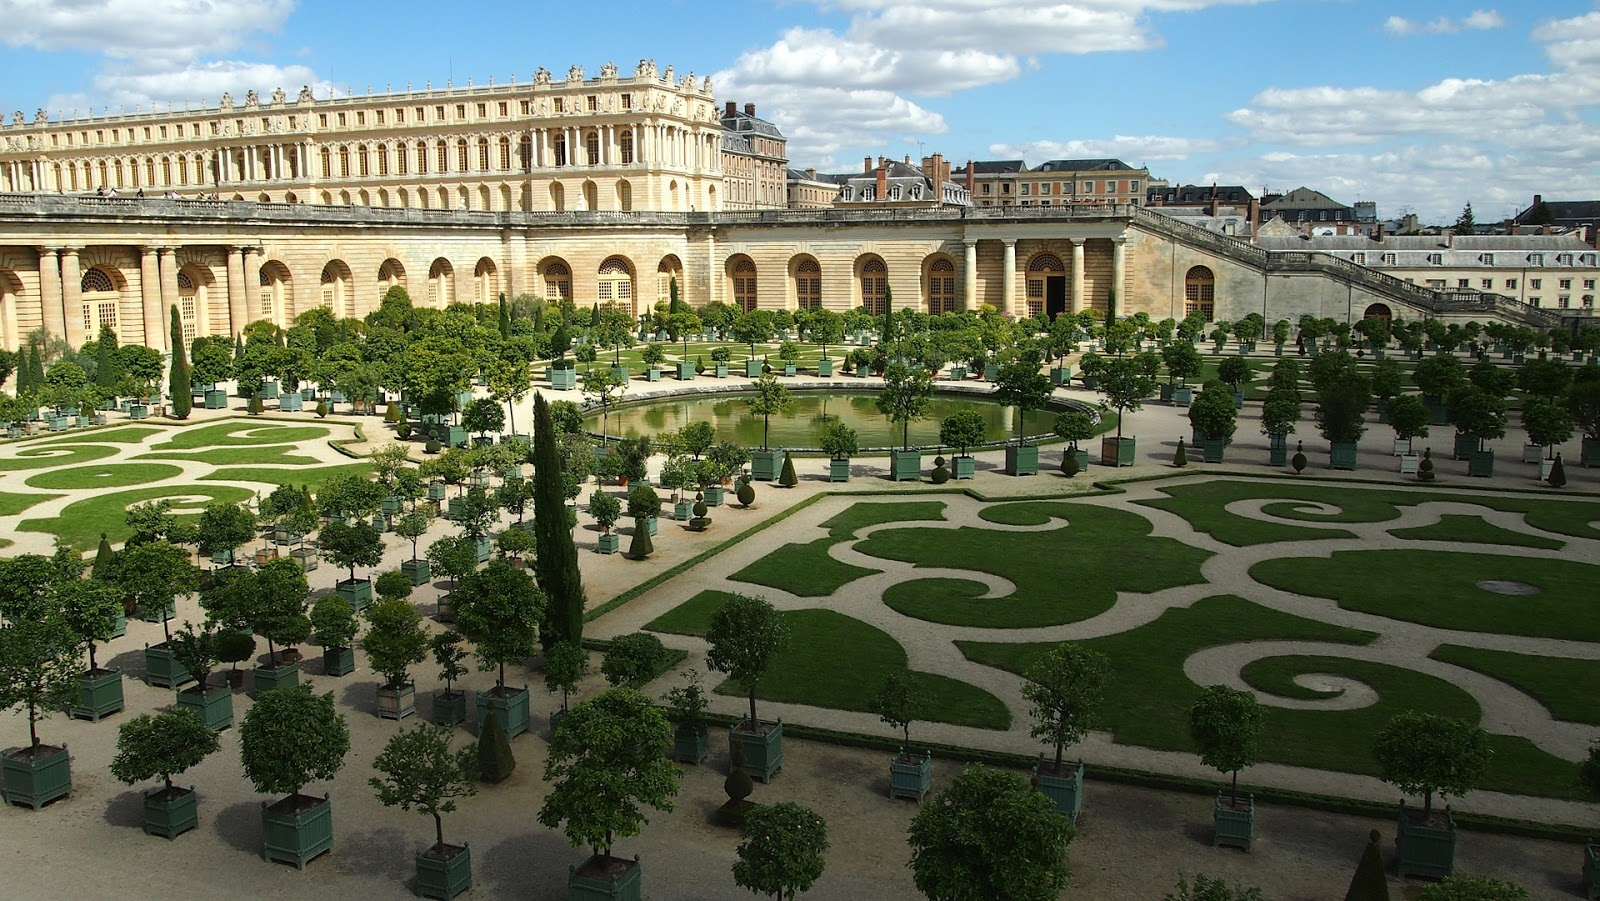 culture on peut tout connaitre sur les jardins du ch teau de versailles quand on gal re. Black Bedroom Furniture Sets. Home Design Ideas